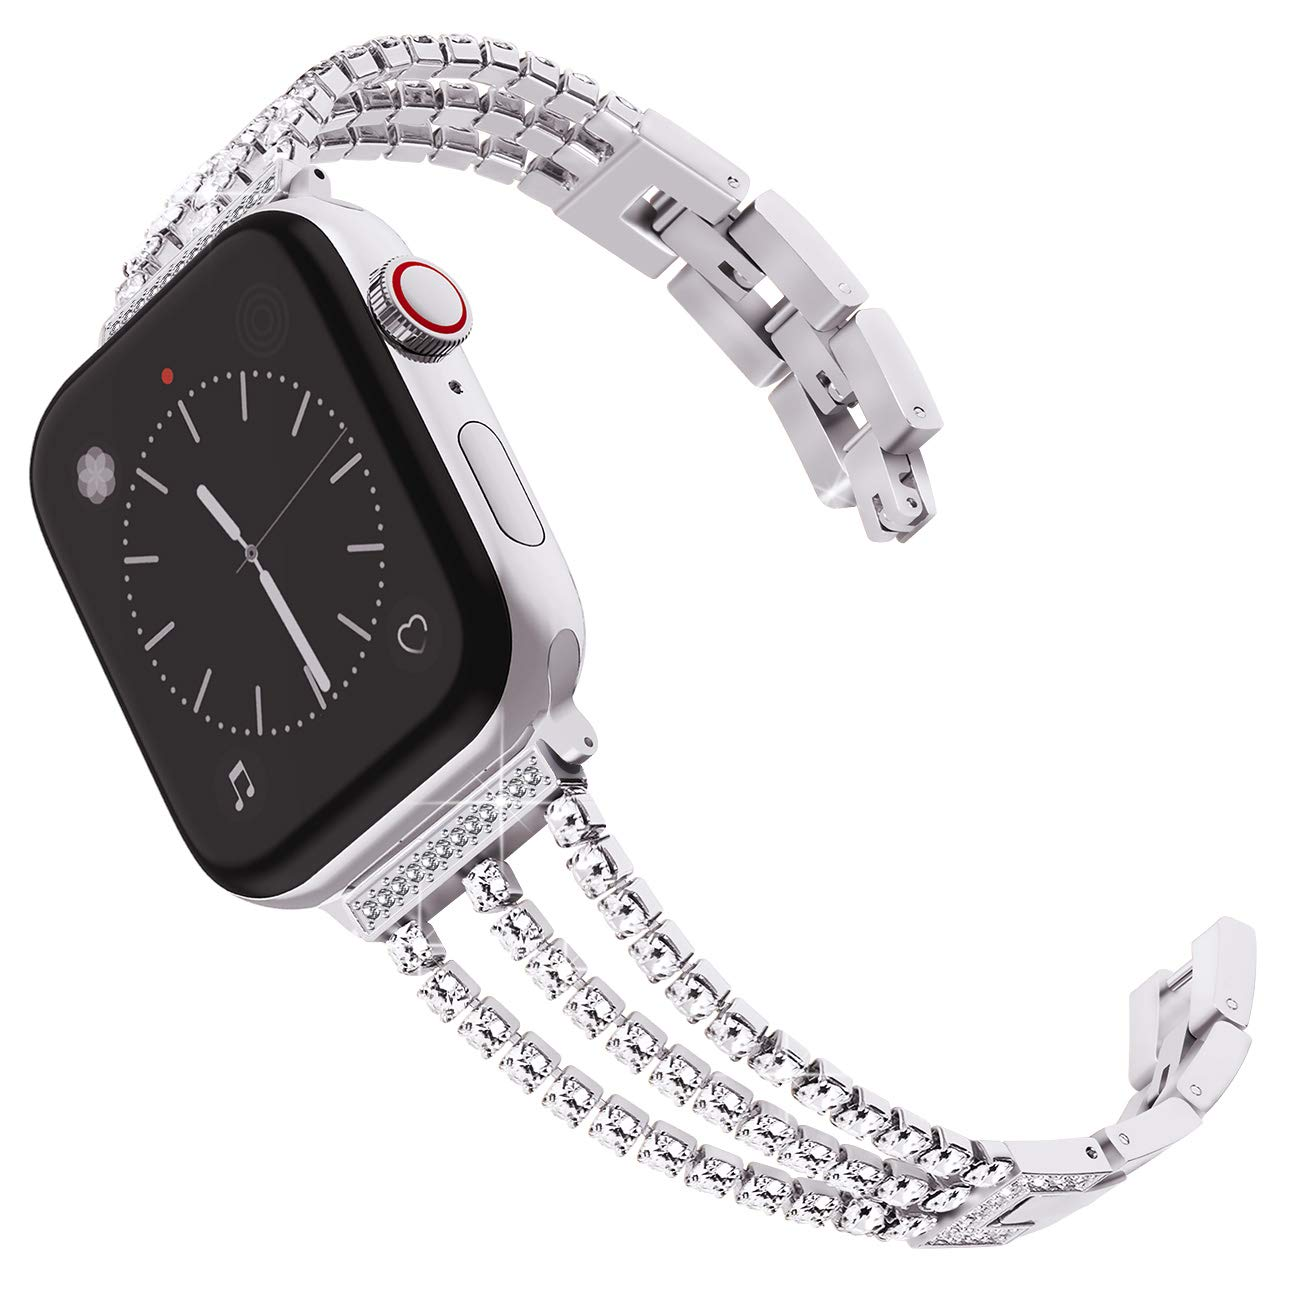 Stainless Steel Band for Women Wristband Strap Cuff Bangle Bracelet with Diamond Replacement for iWatch